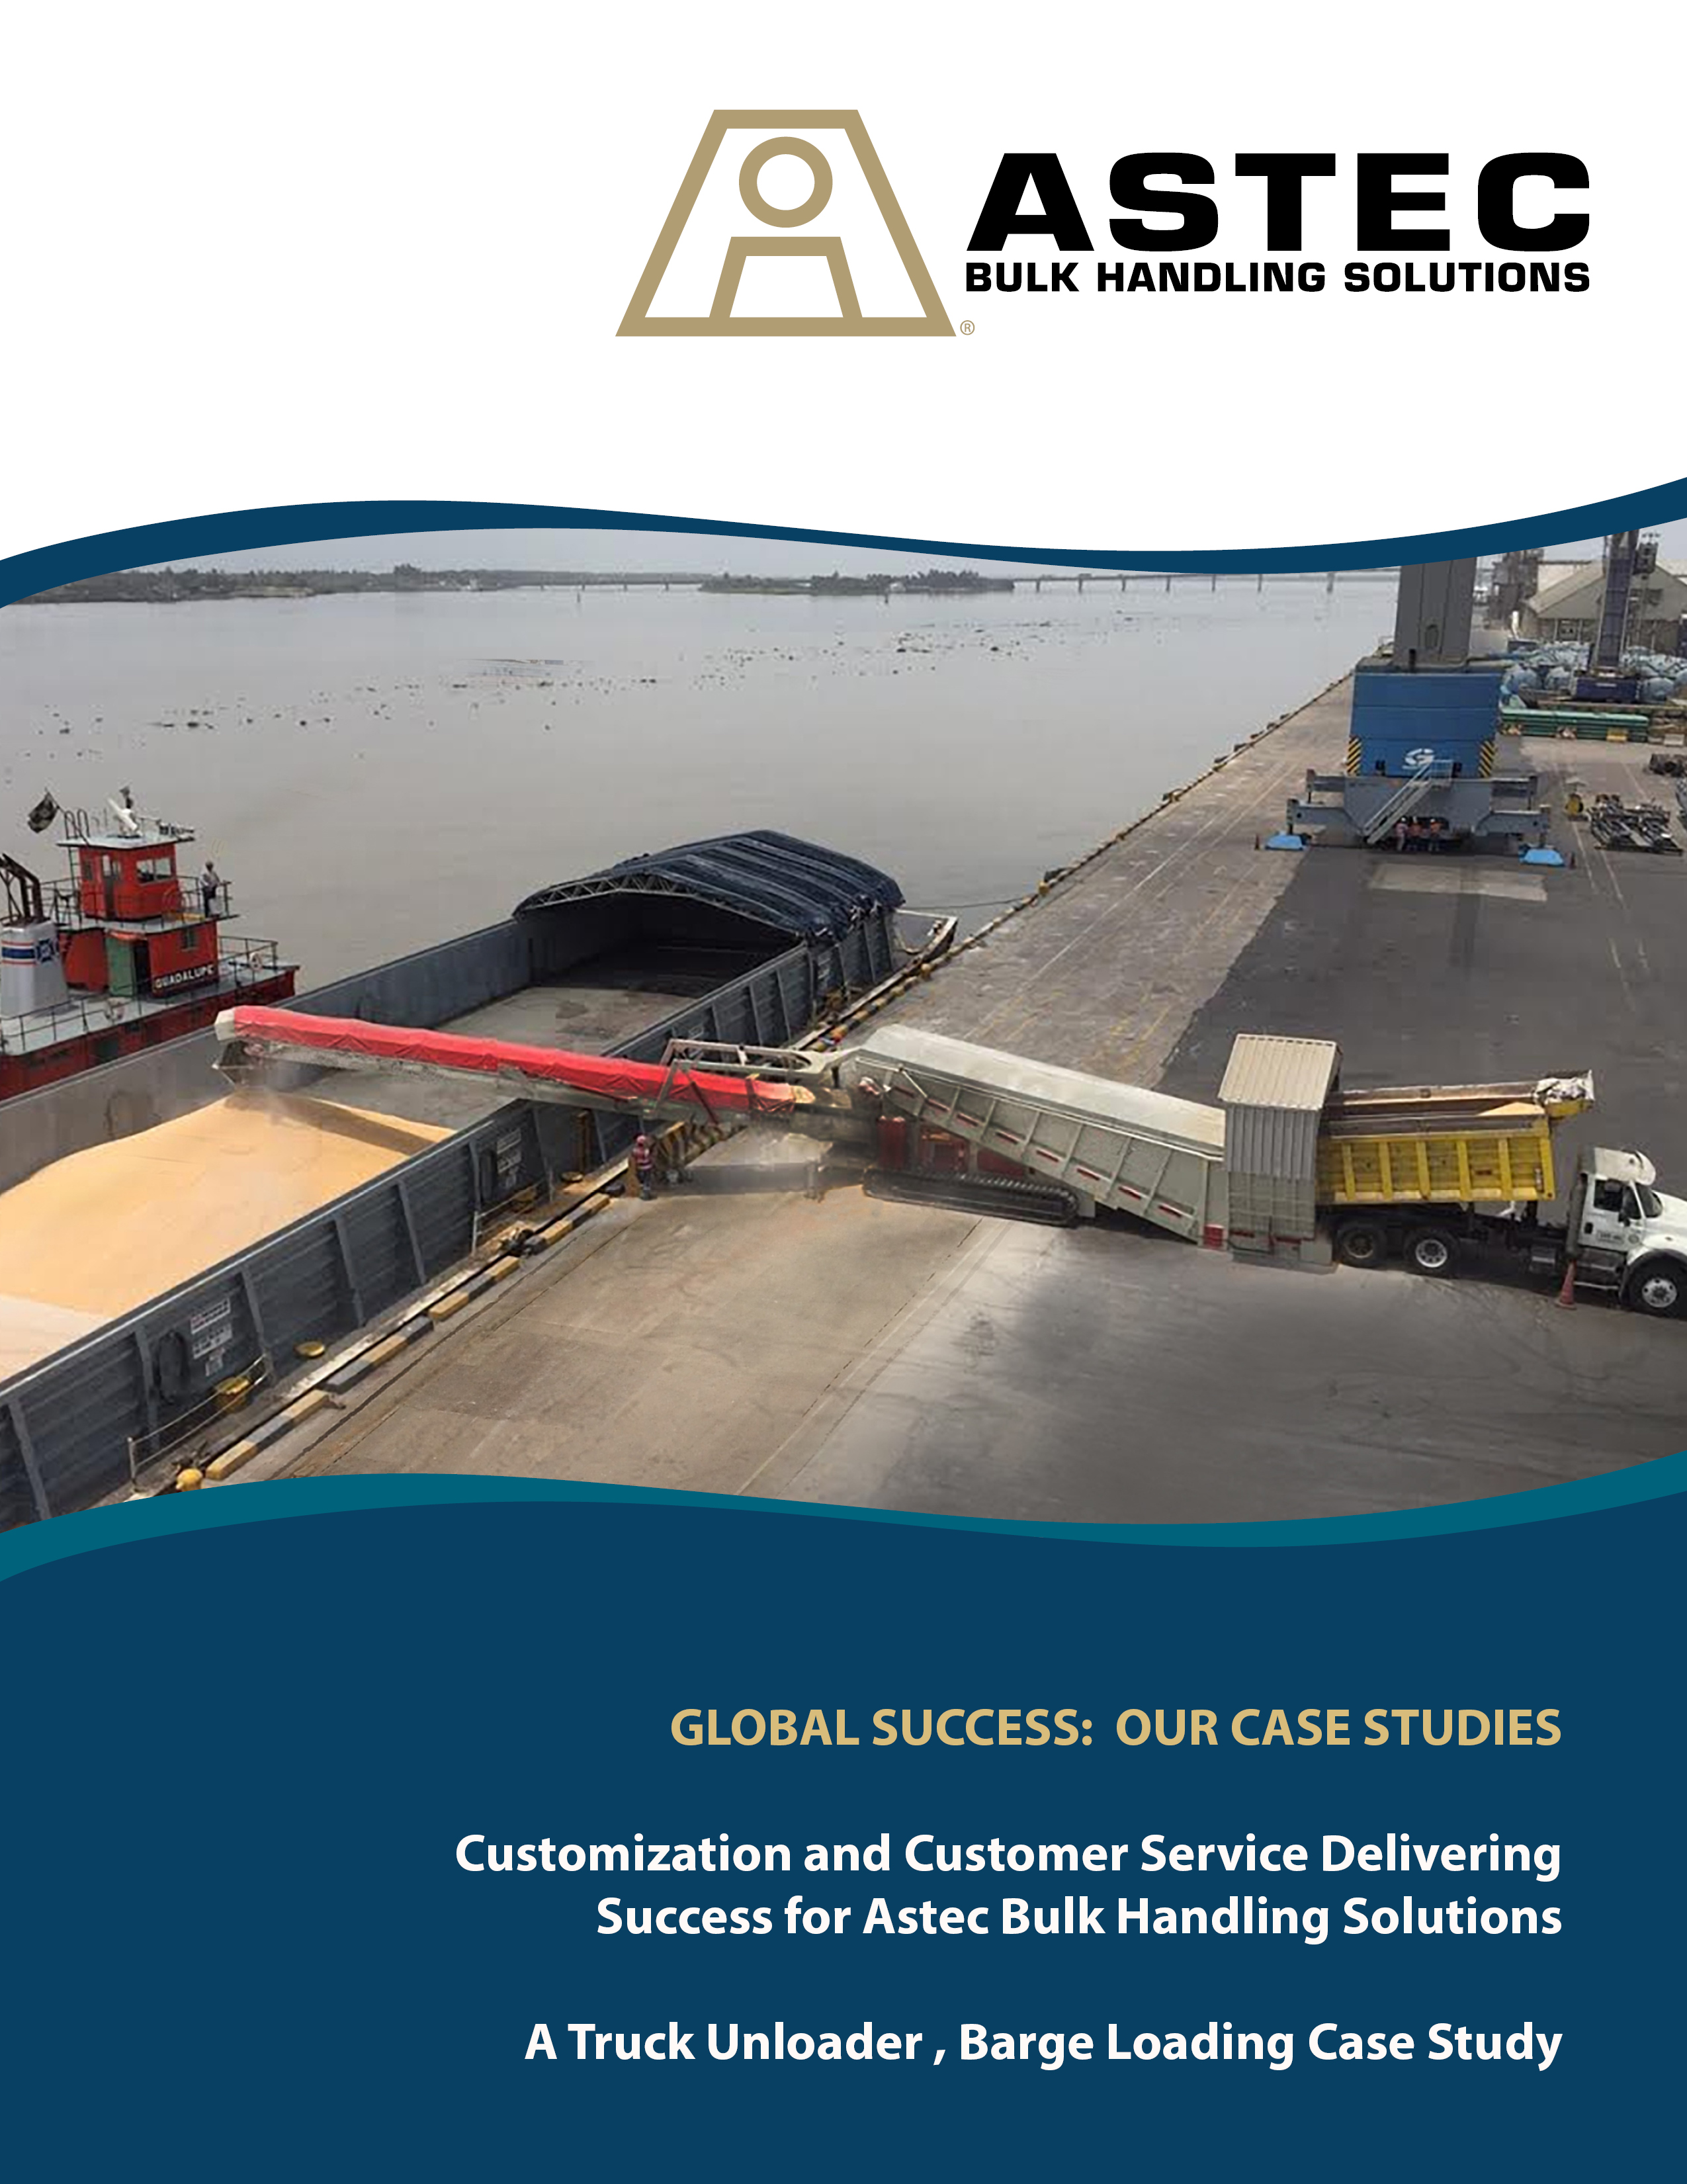 ABHS - Case Study - Truck Unloader in Barge Loading Application